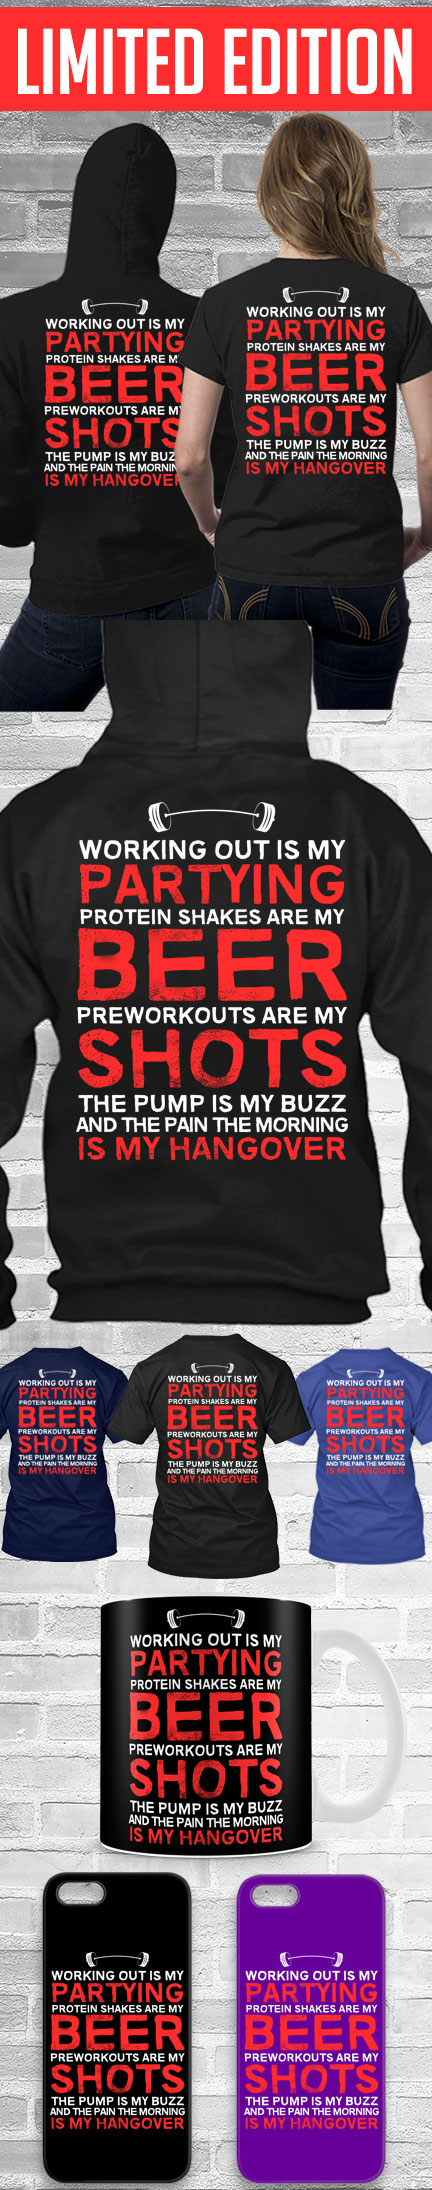 Working Out Shirt! Click The Image To Buy It Now or Tag Someone You Want To Buy This For. #workout